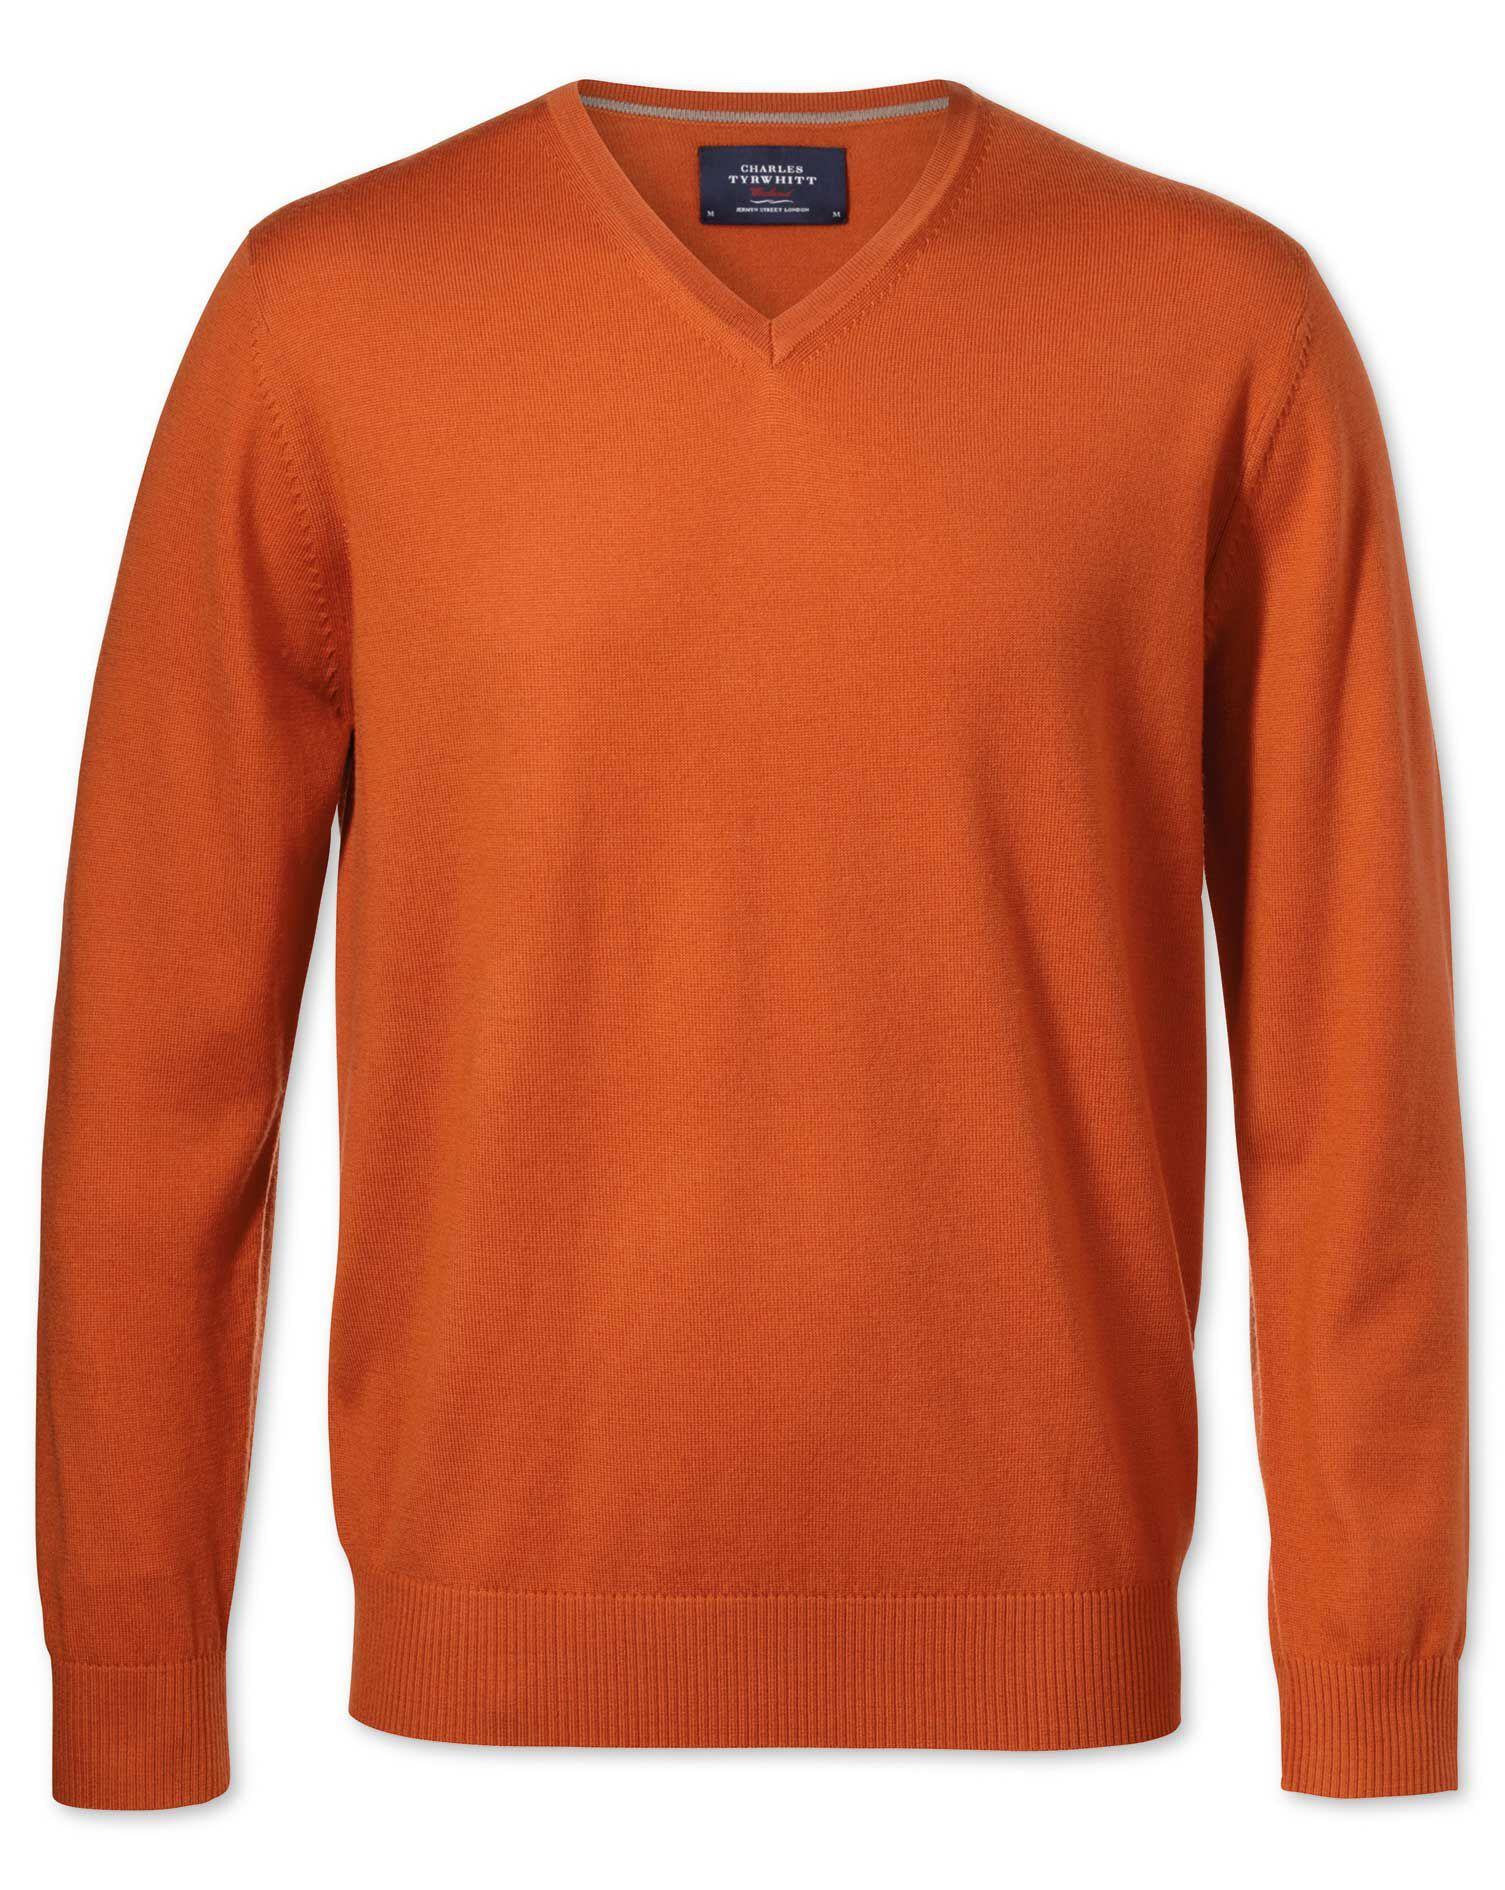 Orange Merino Wool V-Neck Jumper Size Medium by Charles Tyrwhitt